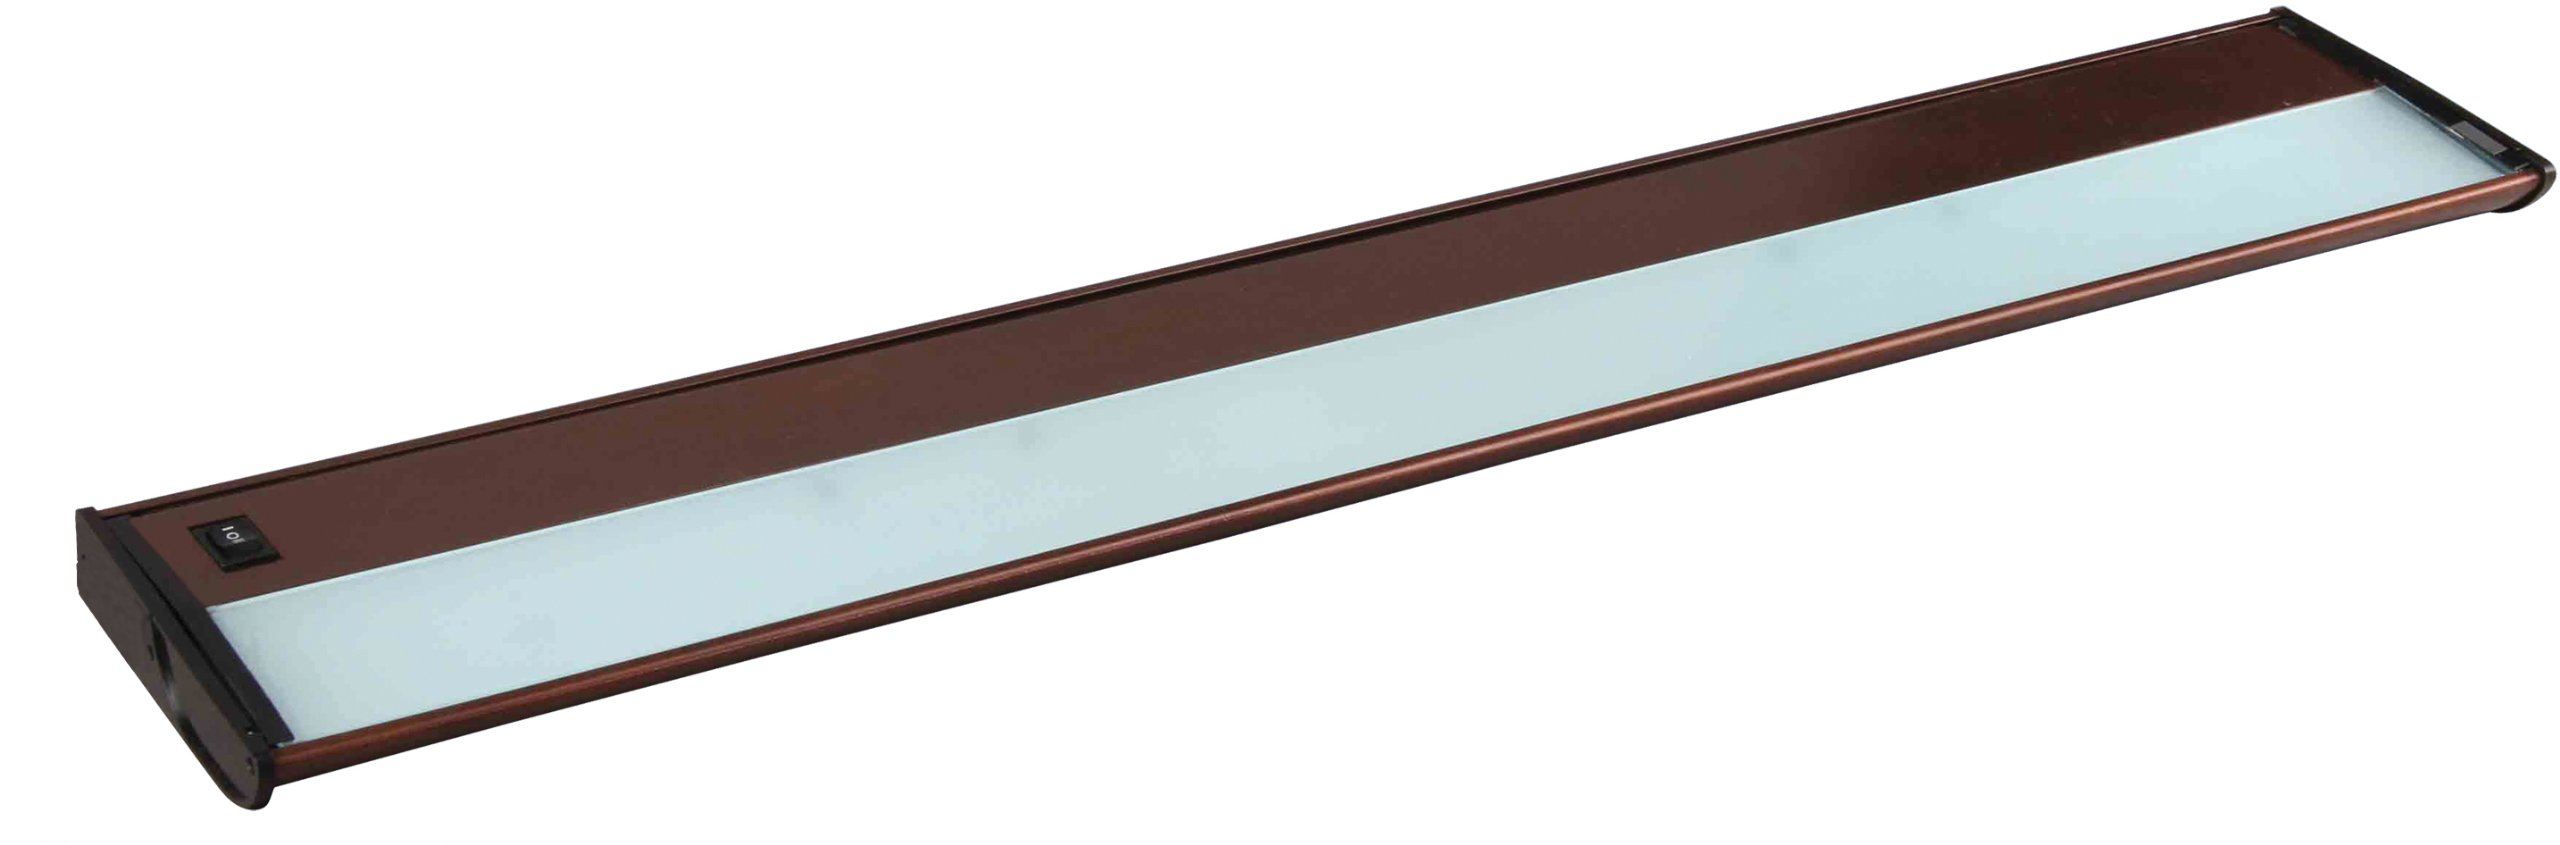 Maxim 87833MB CounterMax MX-X120 30'' 4-Light 120V Xenon, Metallic Bronze Finish, Glass, G8 Xenon Xenon Bulb , 12W Max., Wet Safety Rating, 3000K Color Temp, ELV Dimmable, Glass Shade Material, 840 Rated Lumens